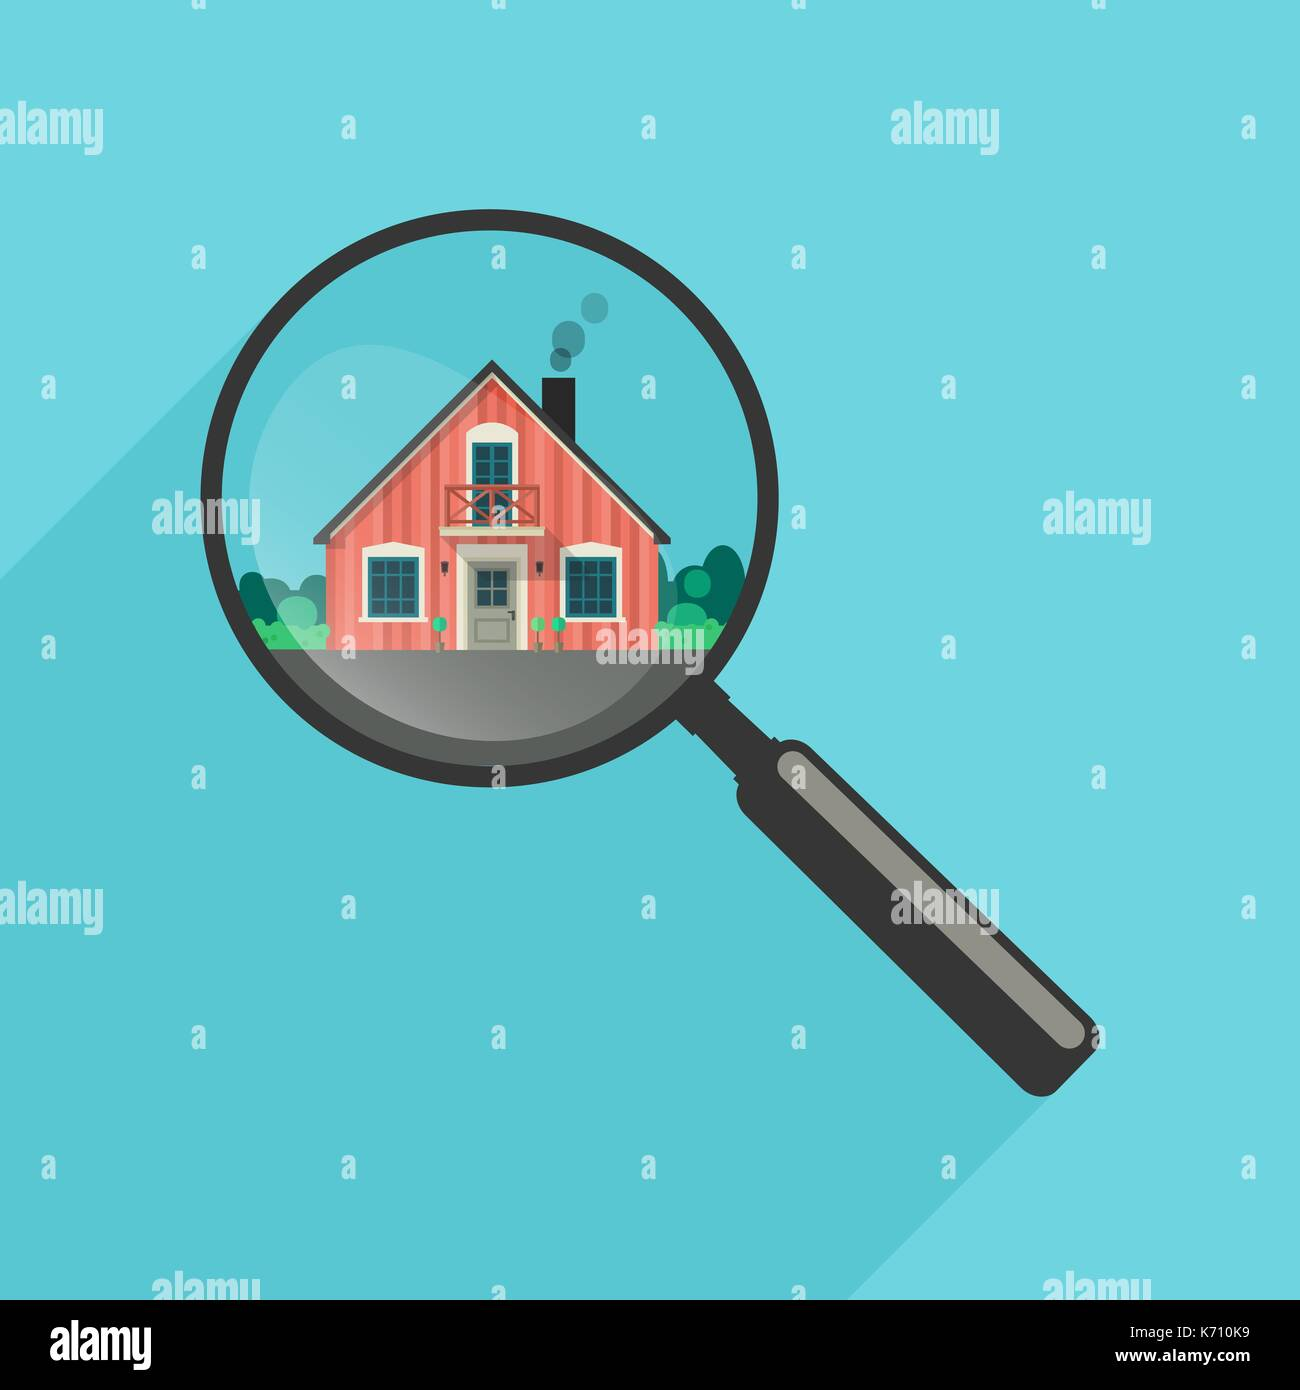 House search with magnifier - Stock Vector